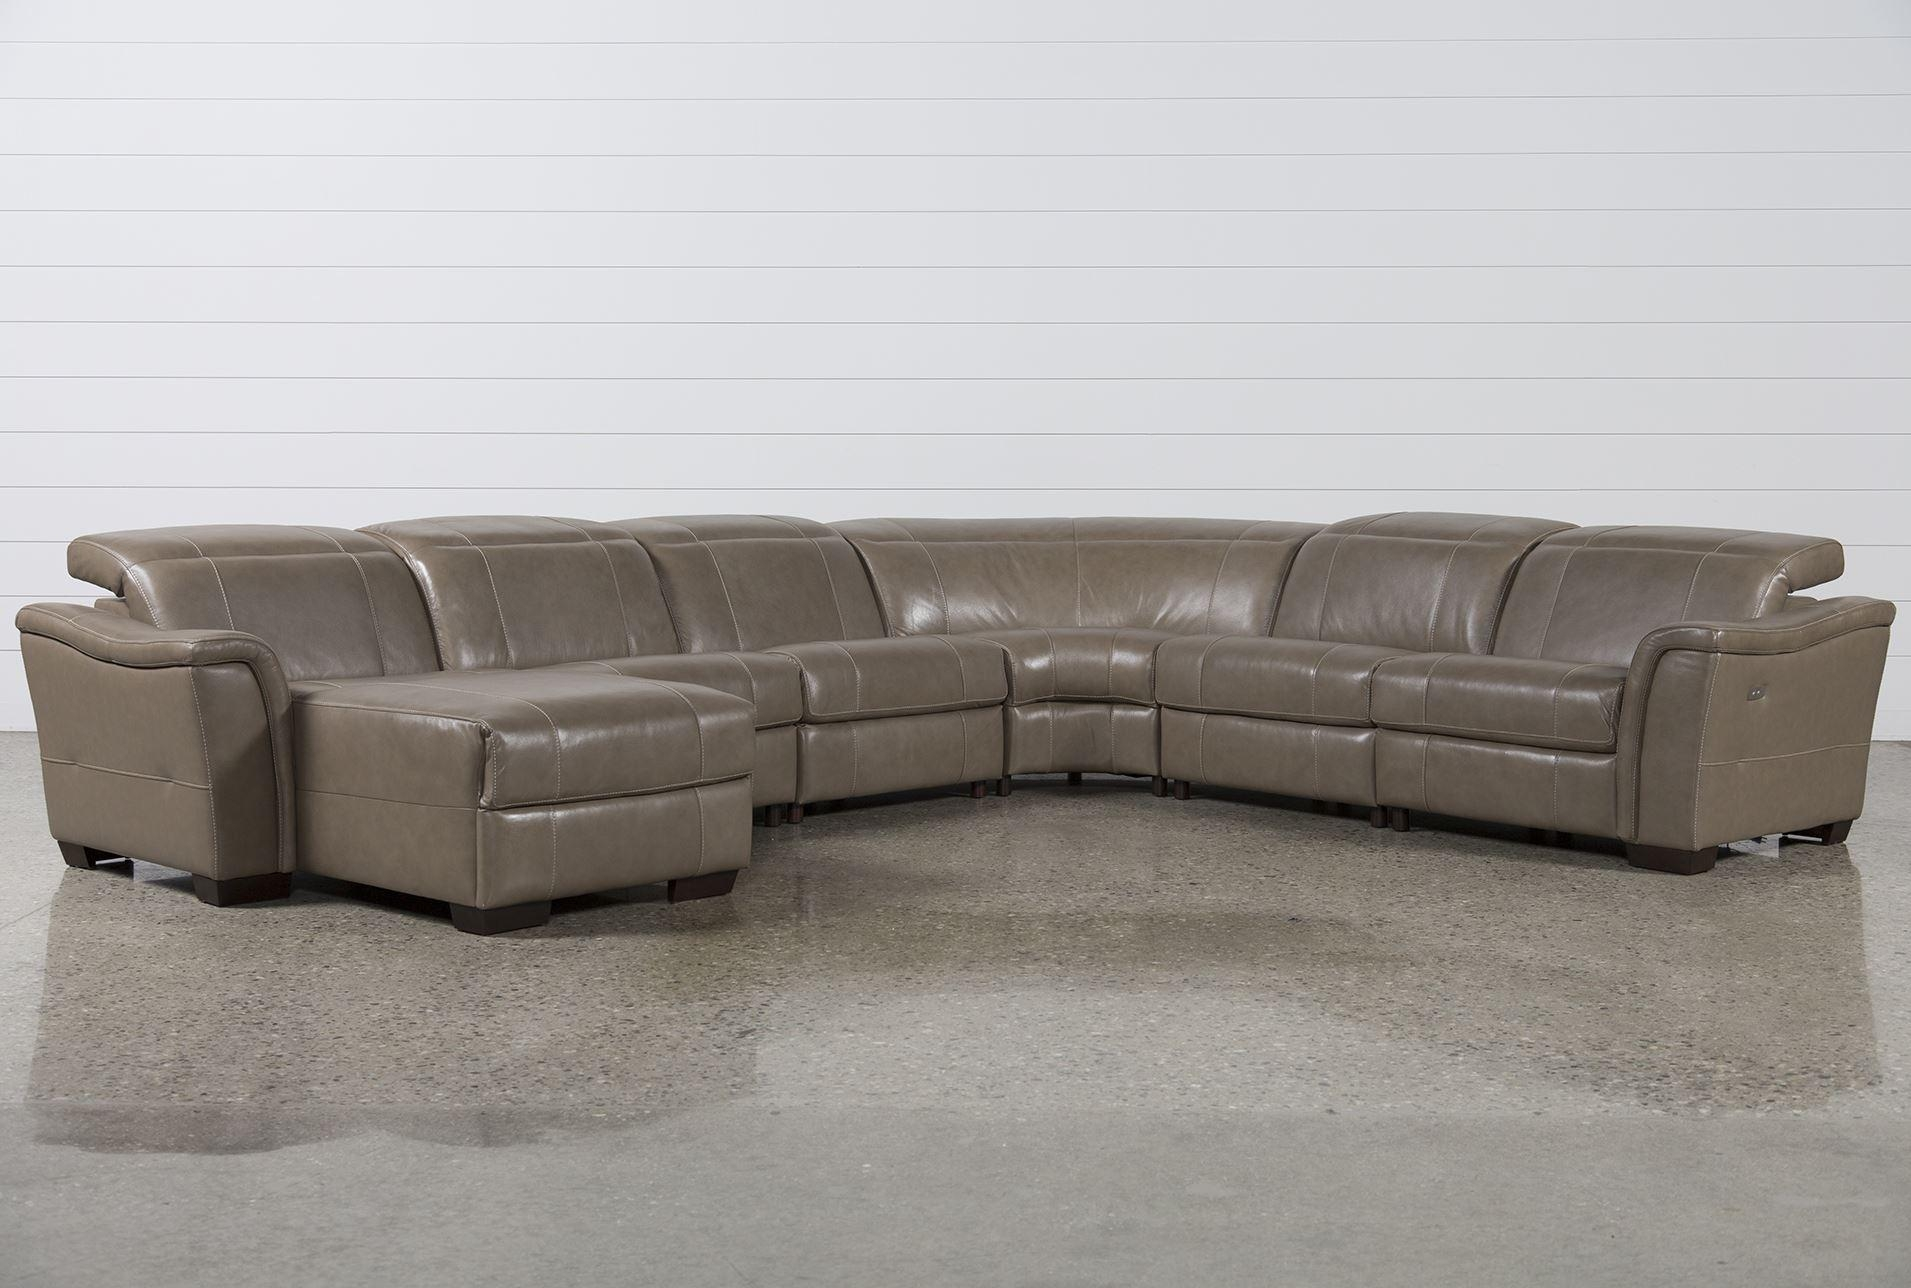 Unique 6 Piece Sectional Sofa 31 In Sofas And Couches Ideas With 6 within 6 Piece Sectional Sofas Couches